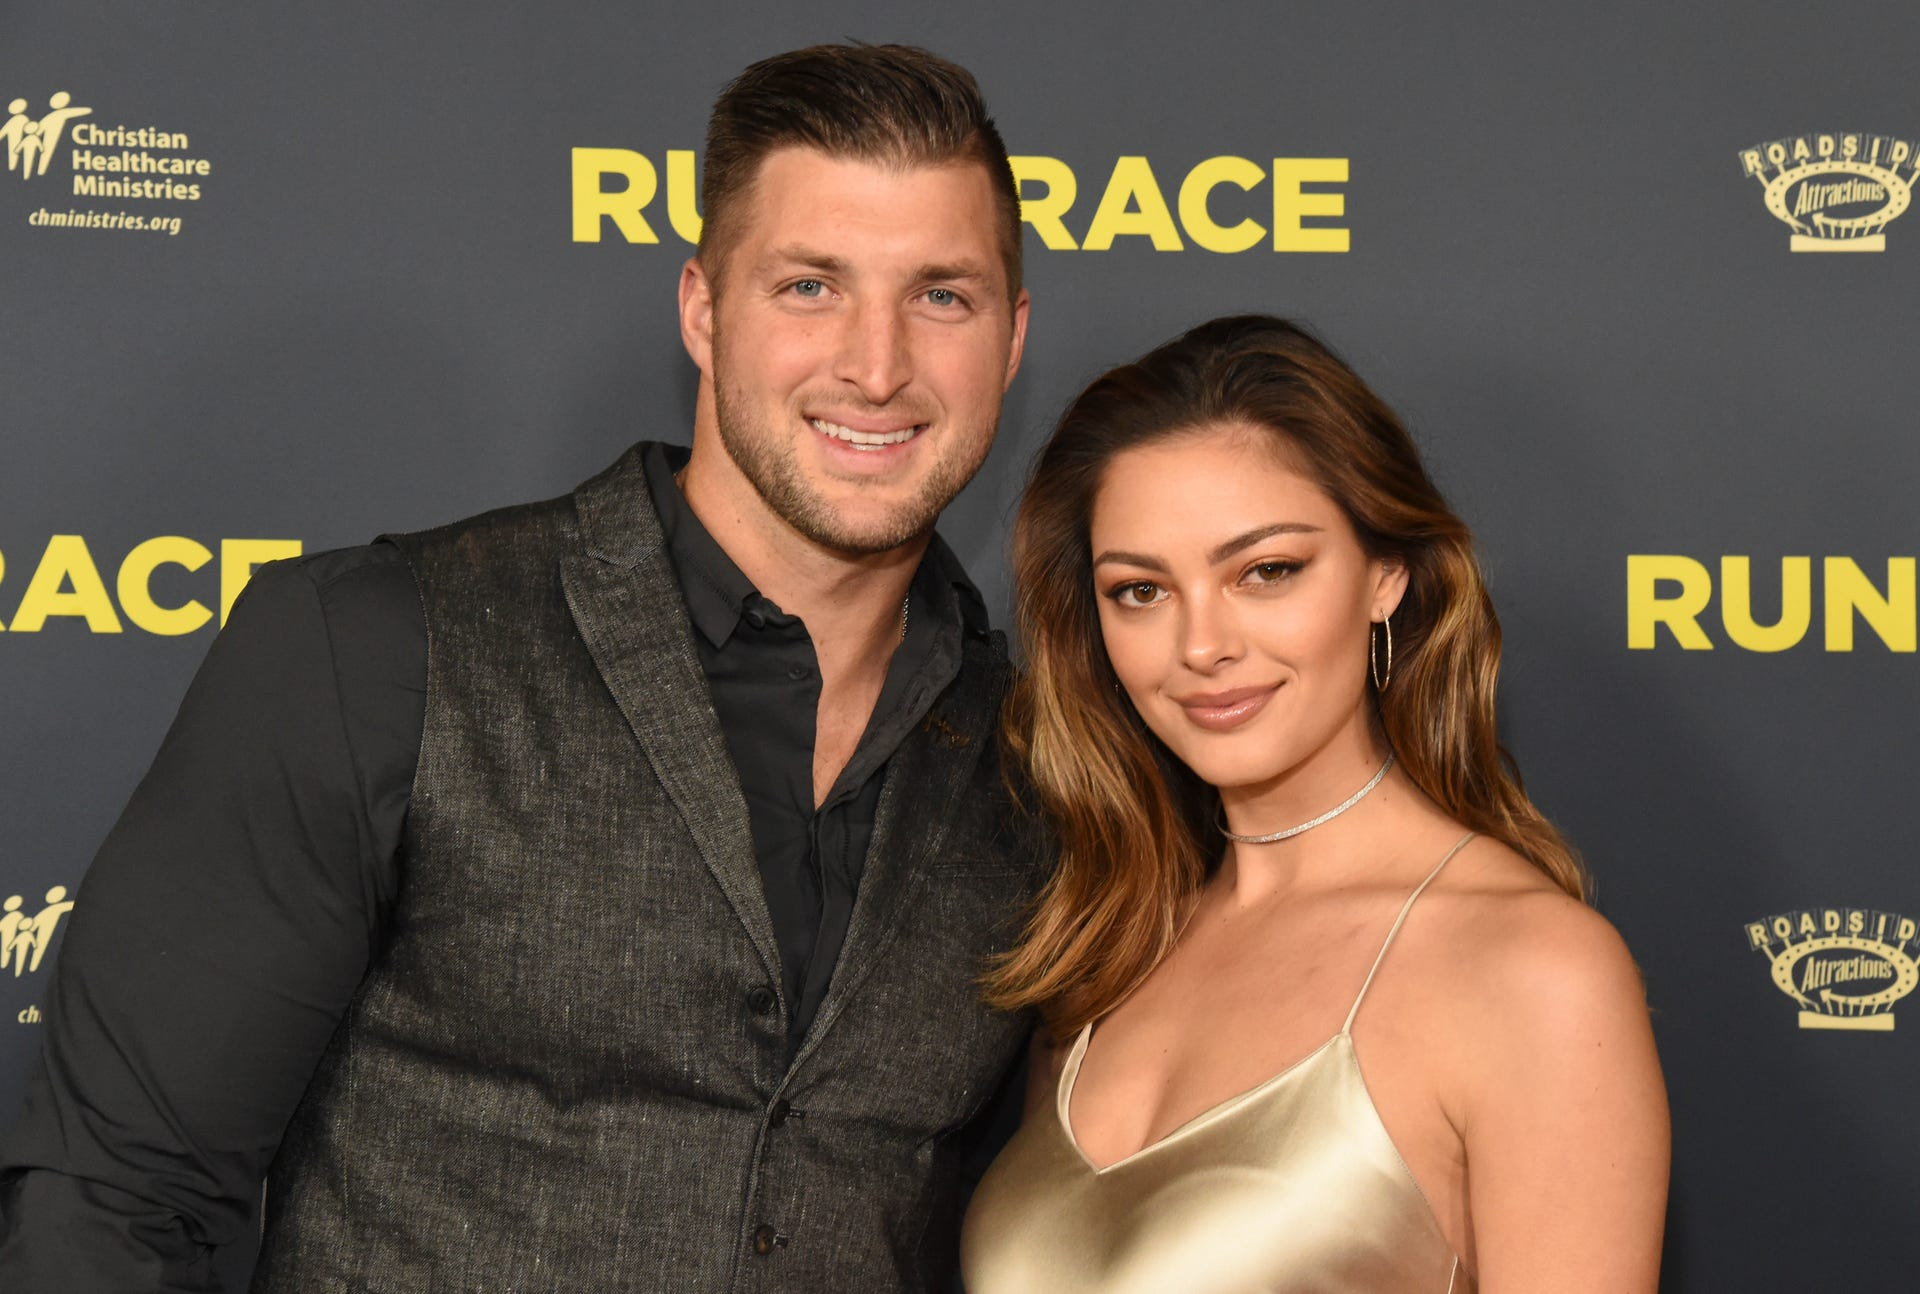 Tim Tebow and Demi-Leigh Nel-Peters at 'Run the Race' movie